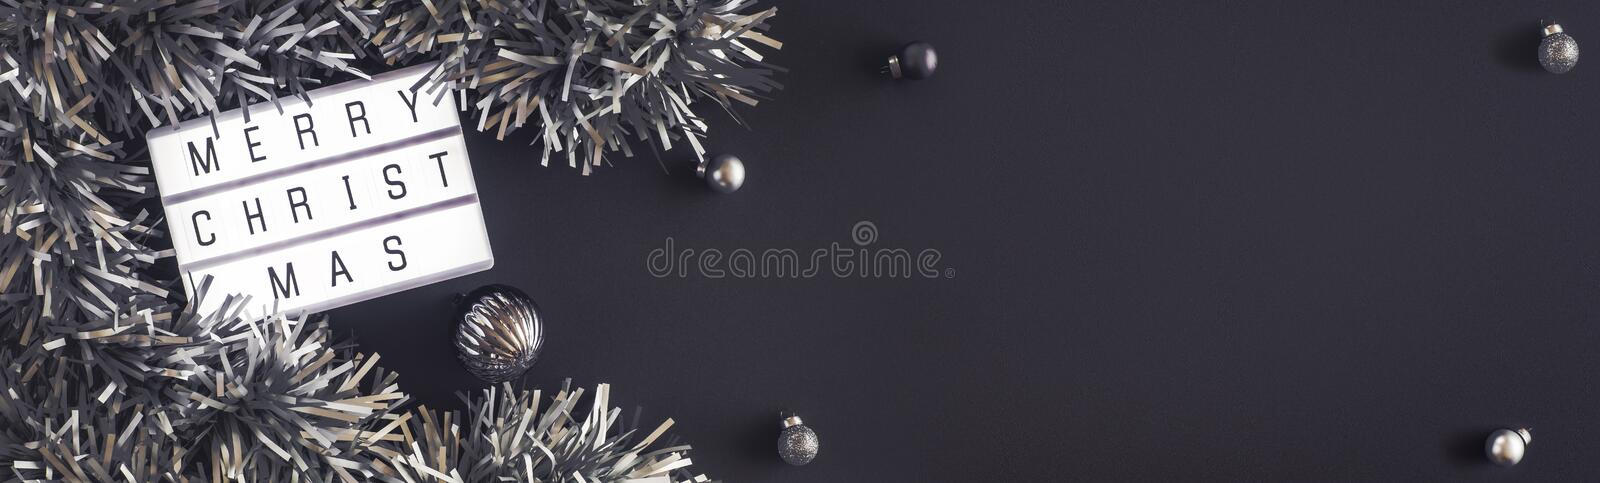 Merry christmas and happy new year lightbox on black table background.top view of tinsel,ball decorate on tabletop.holiday stock image